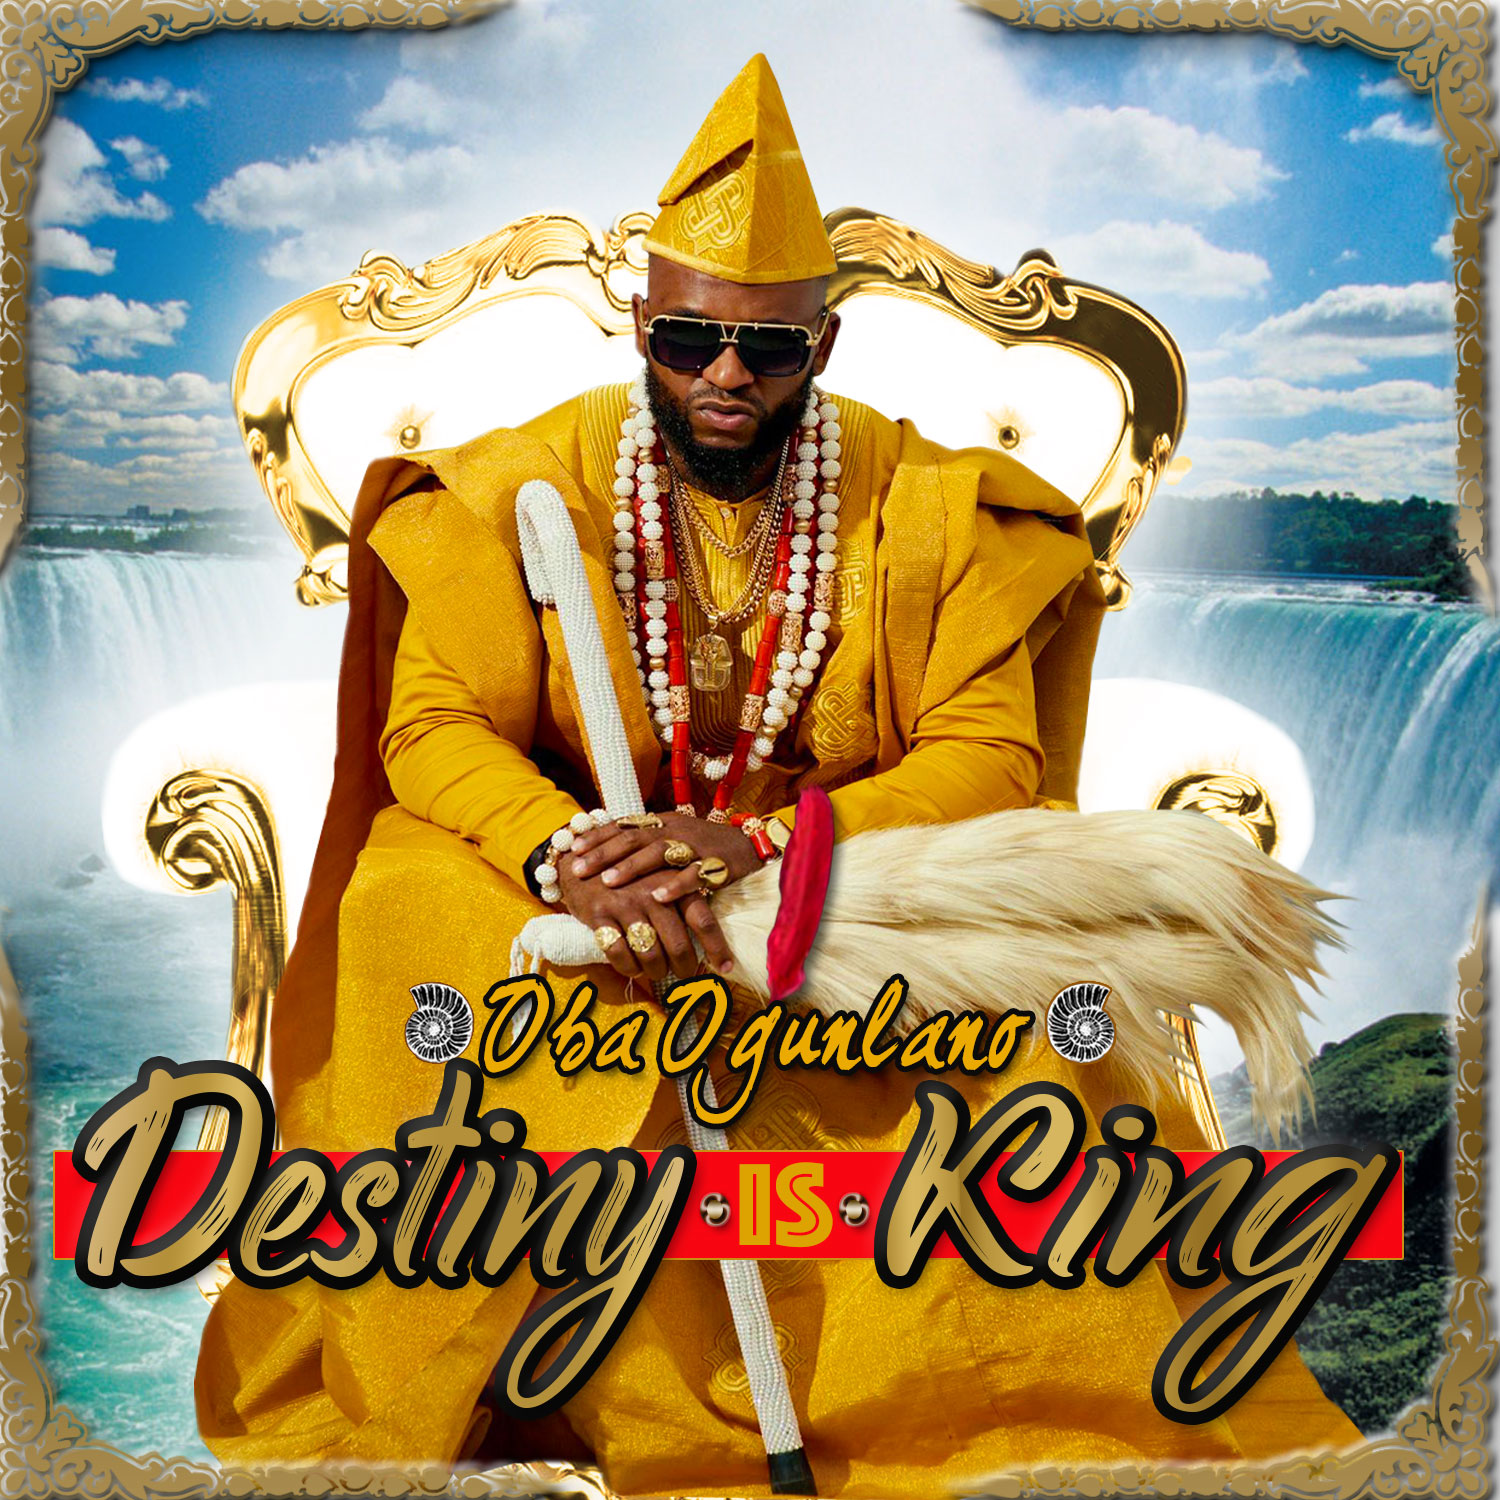 Popular Musician and Vocalist Oba Ogunlano Announces the Launch of His Album 'Destiny is King'